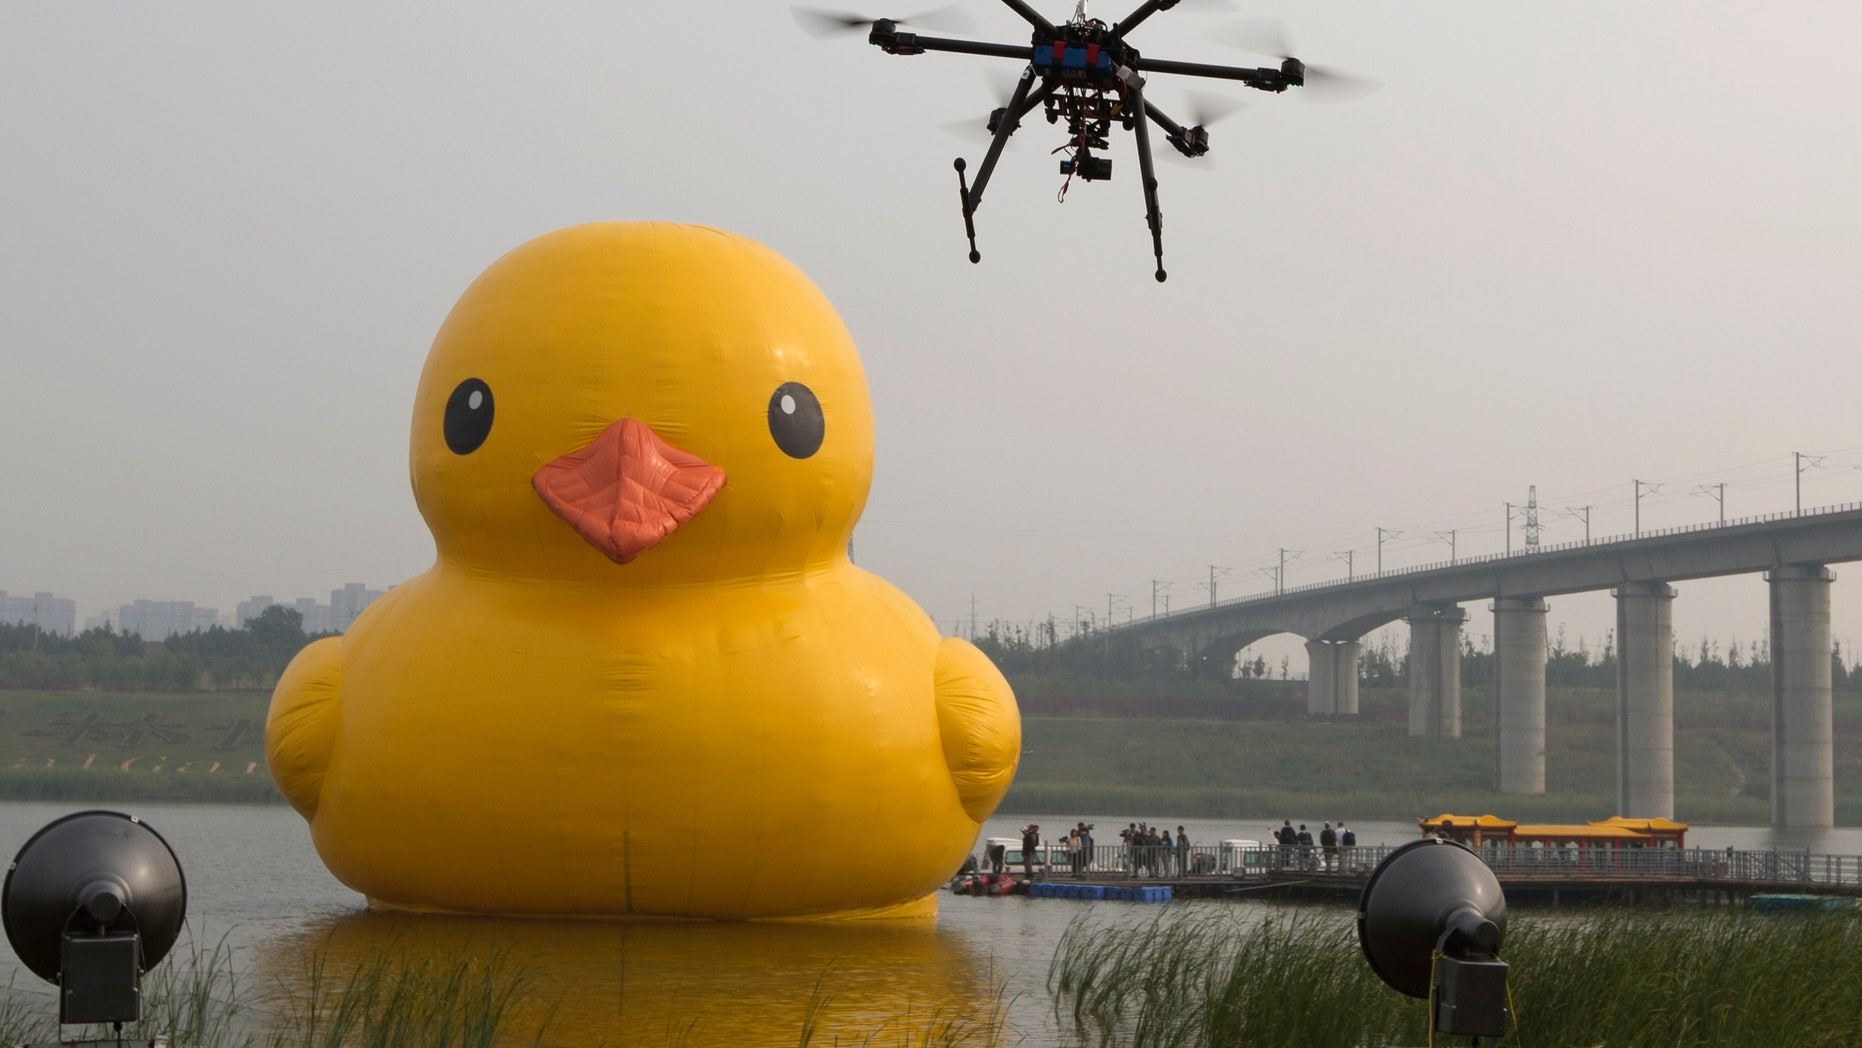 A drone camera hovers near a giant yellow rubber duck created by Dutch artist Florentijn Hofman as an art piece floating in an enclosed branch of Beijing's Yongding river in Beijing, China, Friday, Sept. 6, 2013. The 18-meter tall inflatable duck resembling a popular yellow rubber toy made its debut in Beijing on Friday after attracting wide attention in previous appearances in eight major cities around the world. (AP Photo/Ng Han Guan)